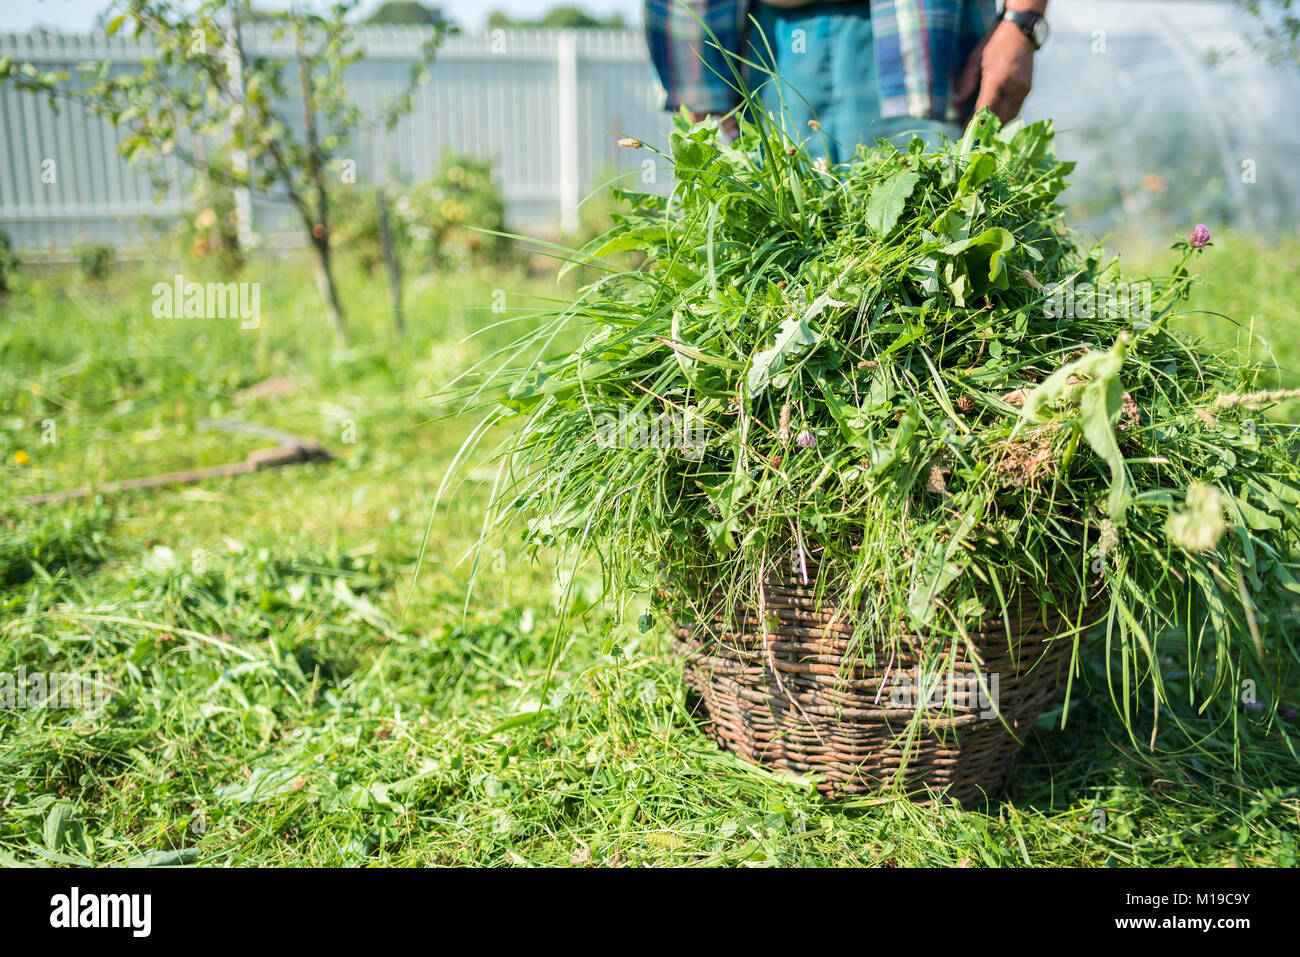 Cut grass are in a basket, scythe, mow grass with a hand tool, handmade, outdated method, countryside, copy space, - Stock Image